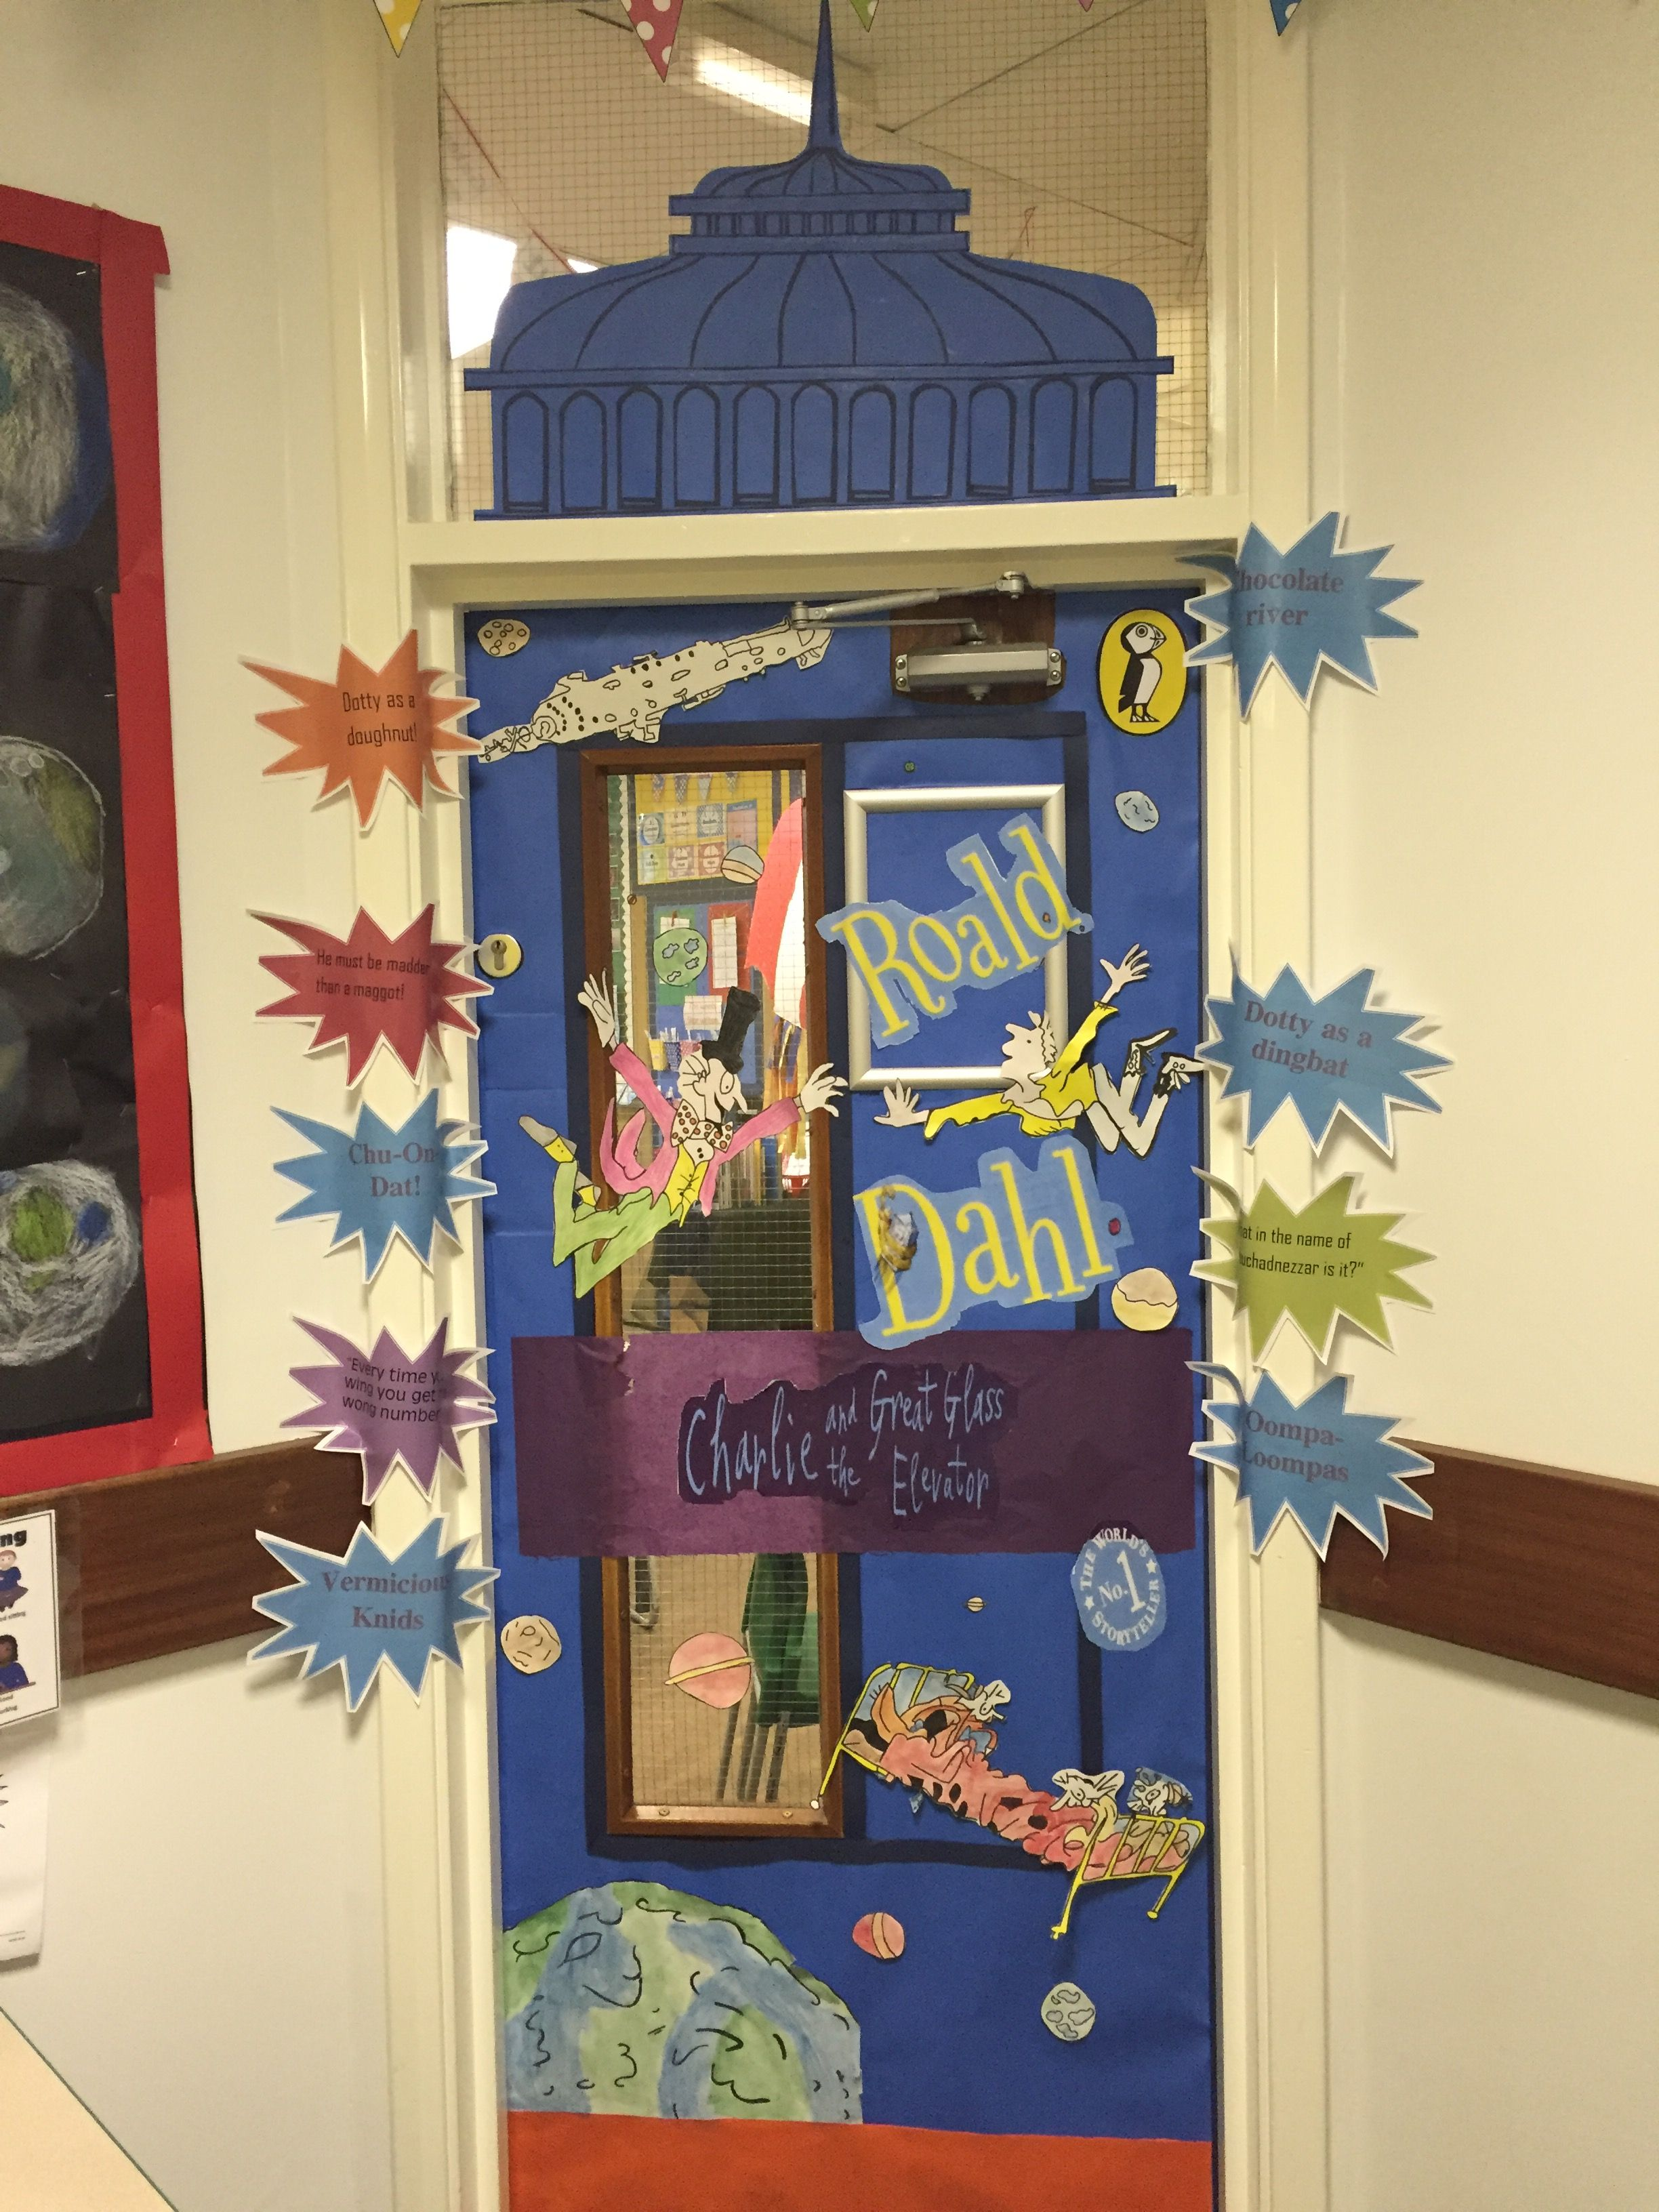 Charlie and the great glass elevator - Roald Dahl # door cover# Charlie and  the chocolate factory # floating in space # willy wonker # world book day  ...